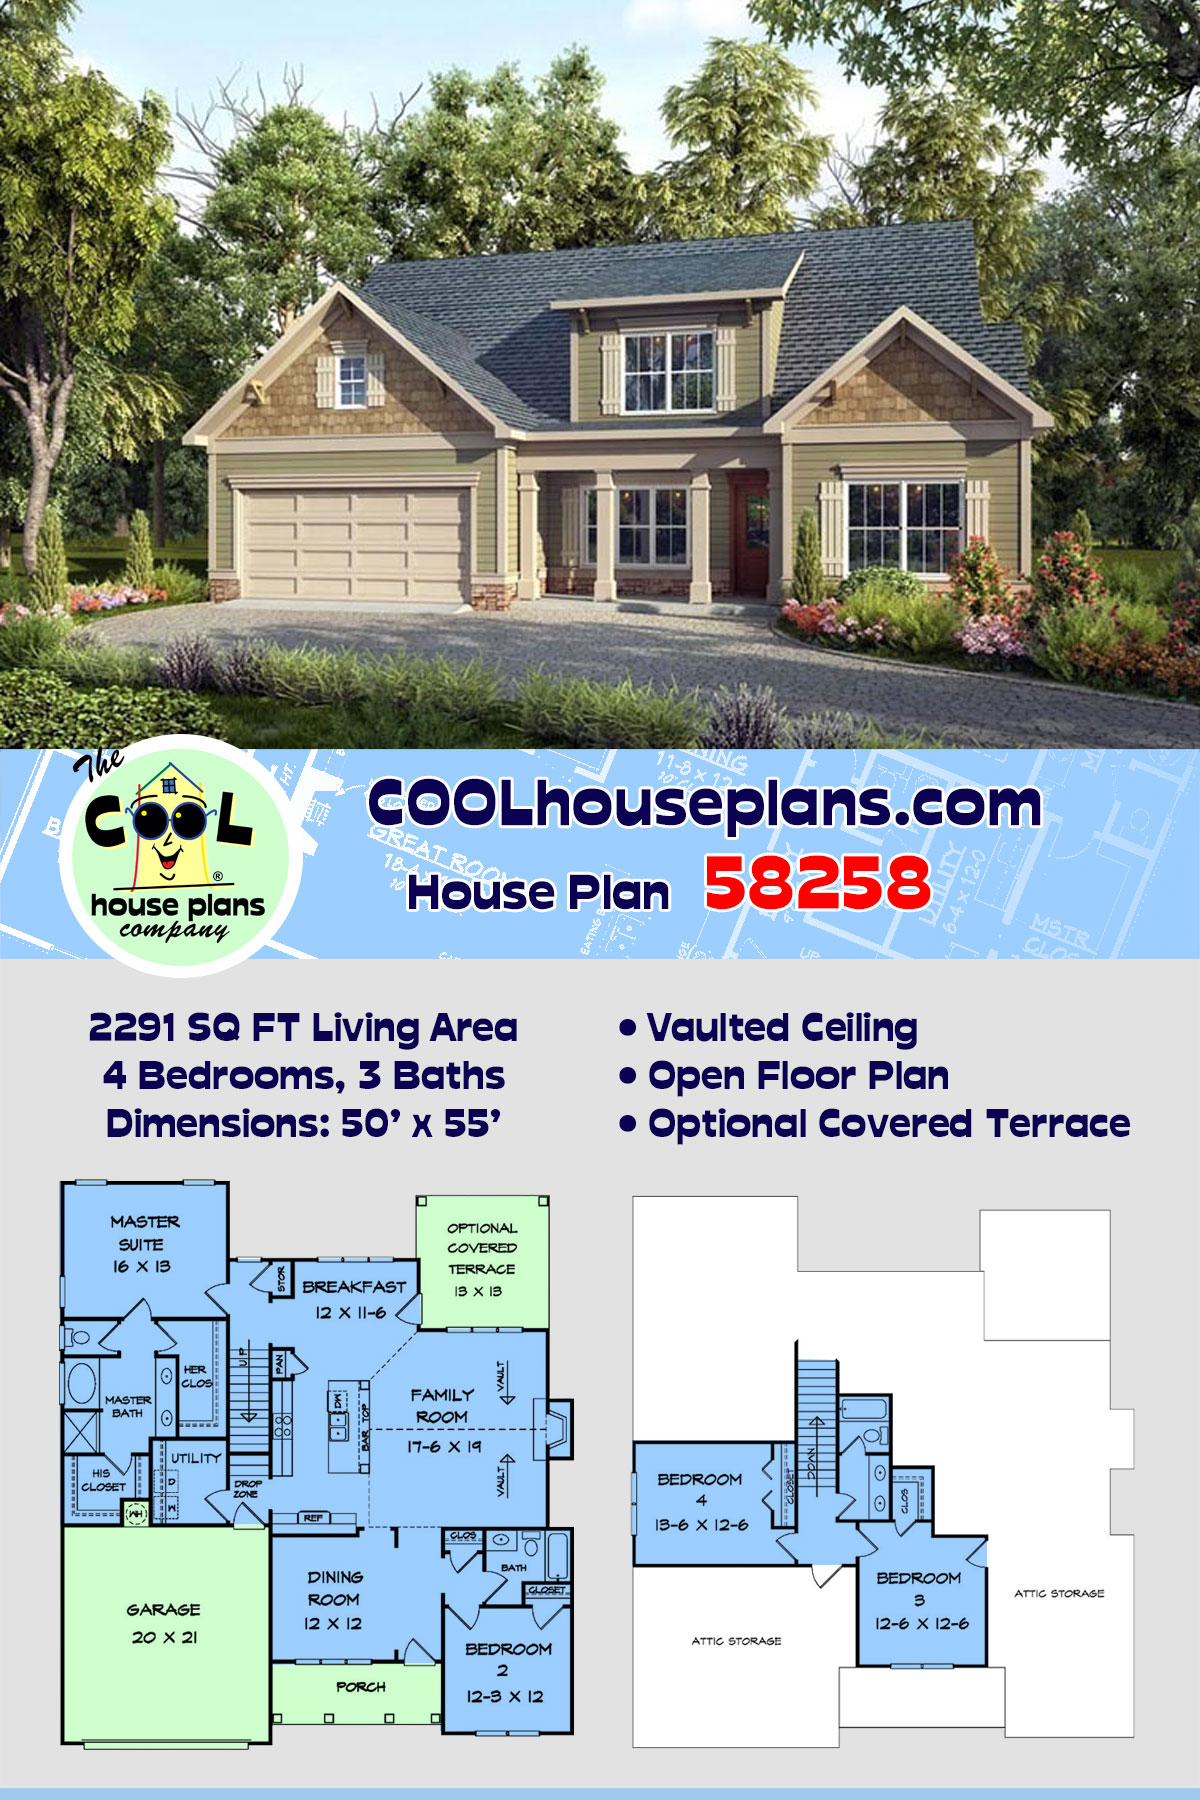 Craftsman, Traditional House Plan 58258 with 4 Beds, 3 Baths, 2 Car Garage